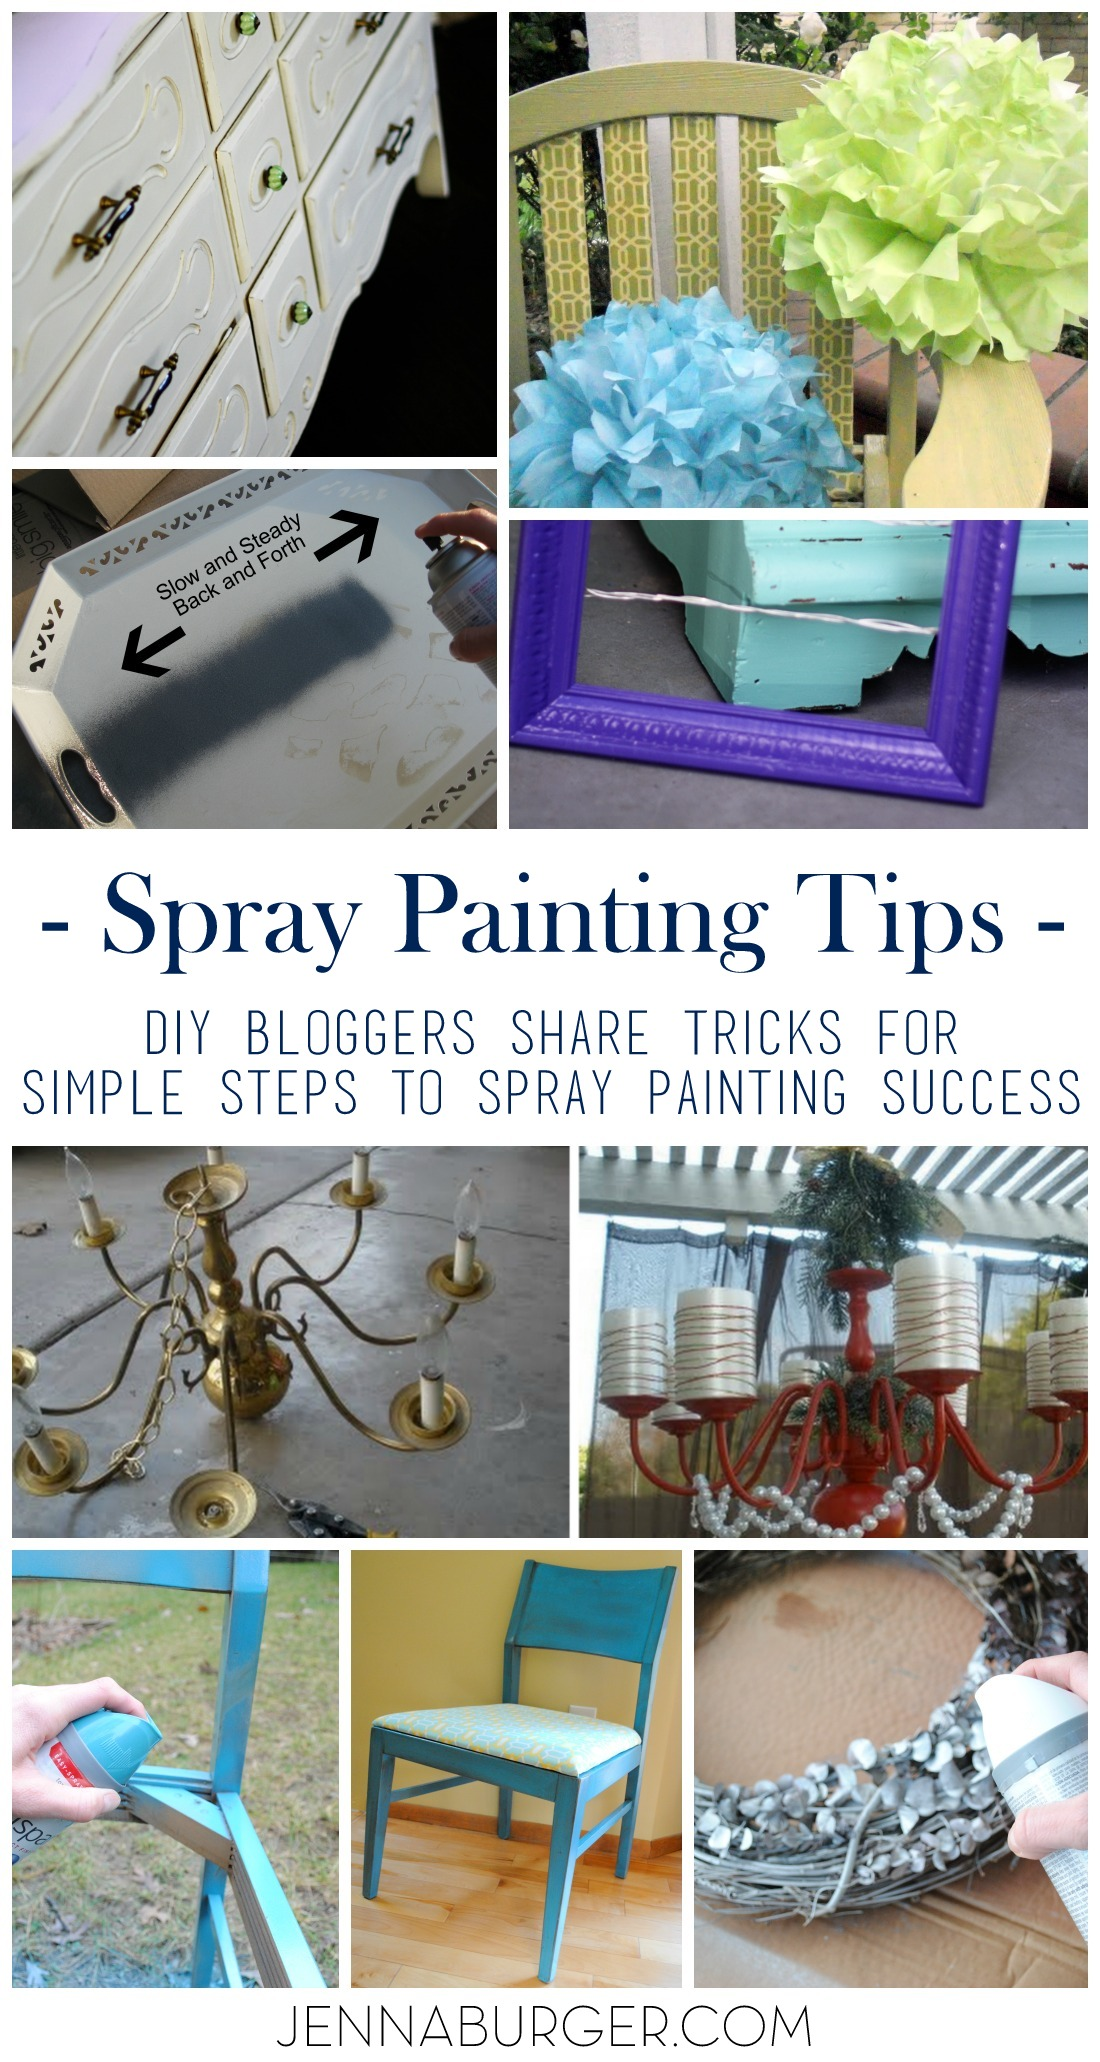 Spray Painting Tips From The Pros: DIY BLOGGERS Share Tricks For Simple  Steps To Spray